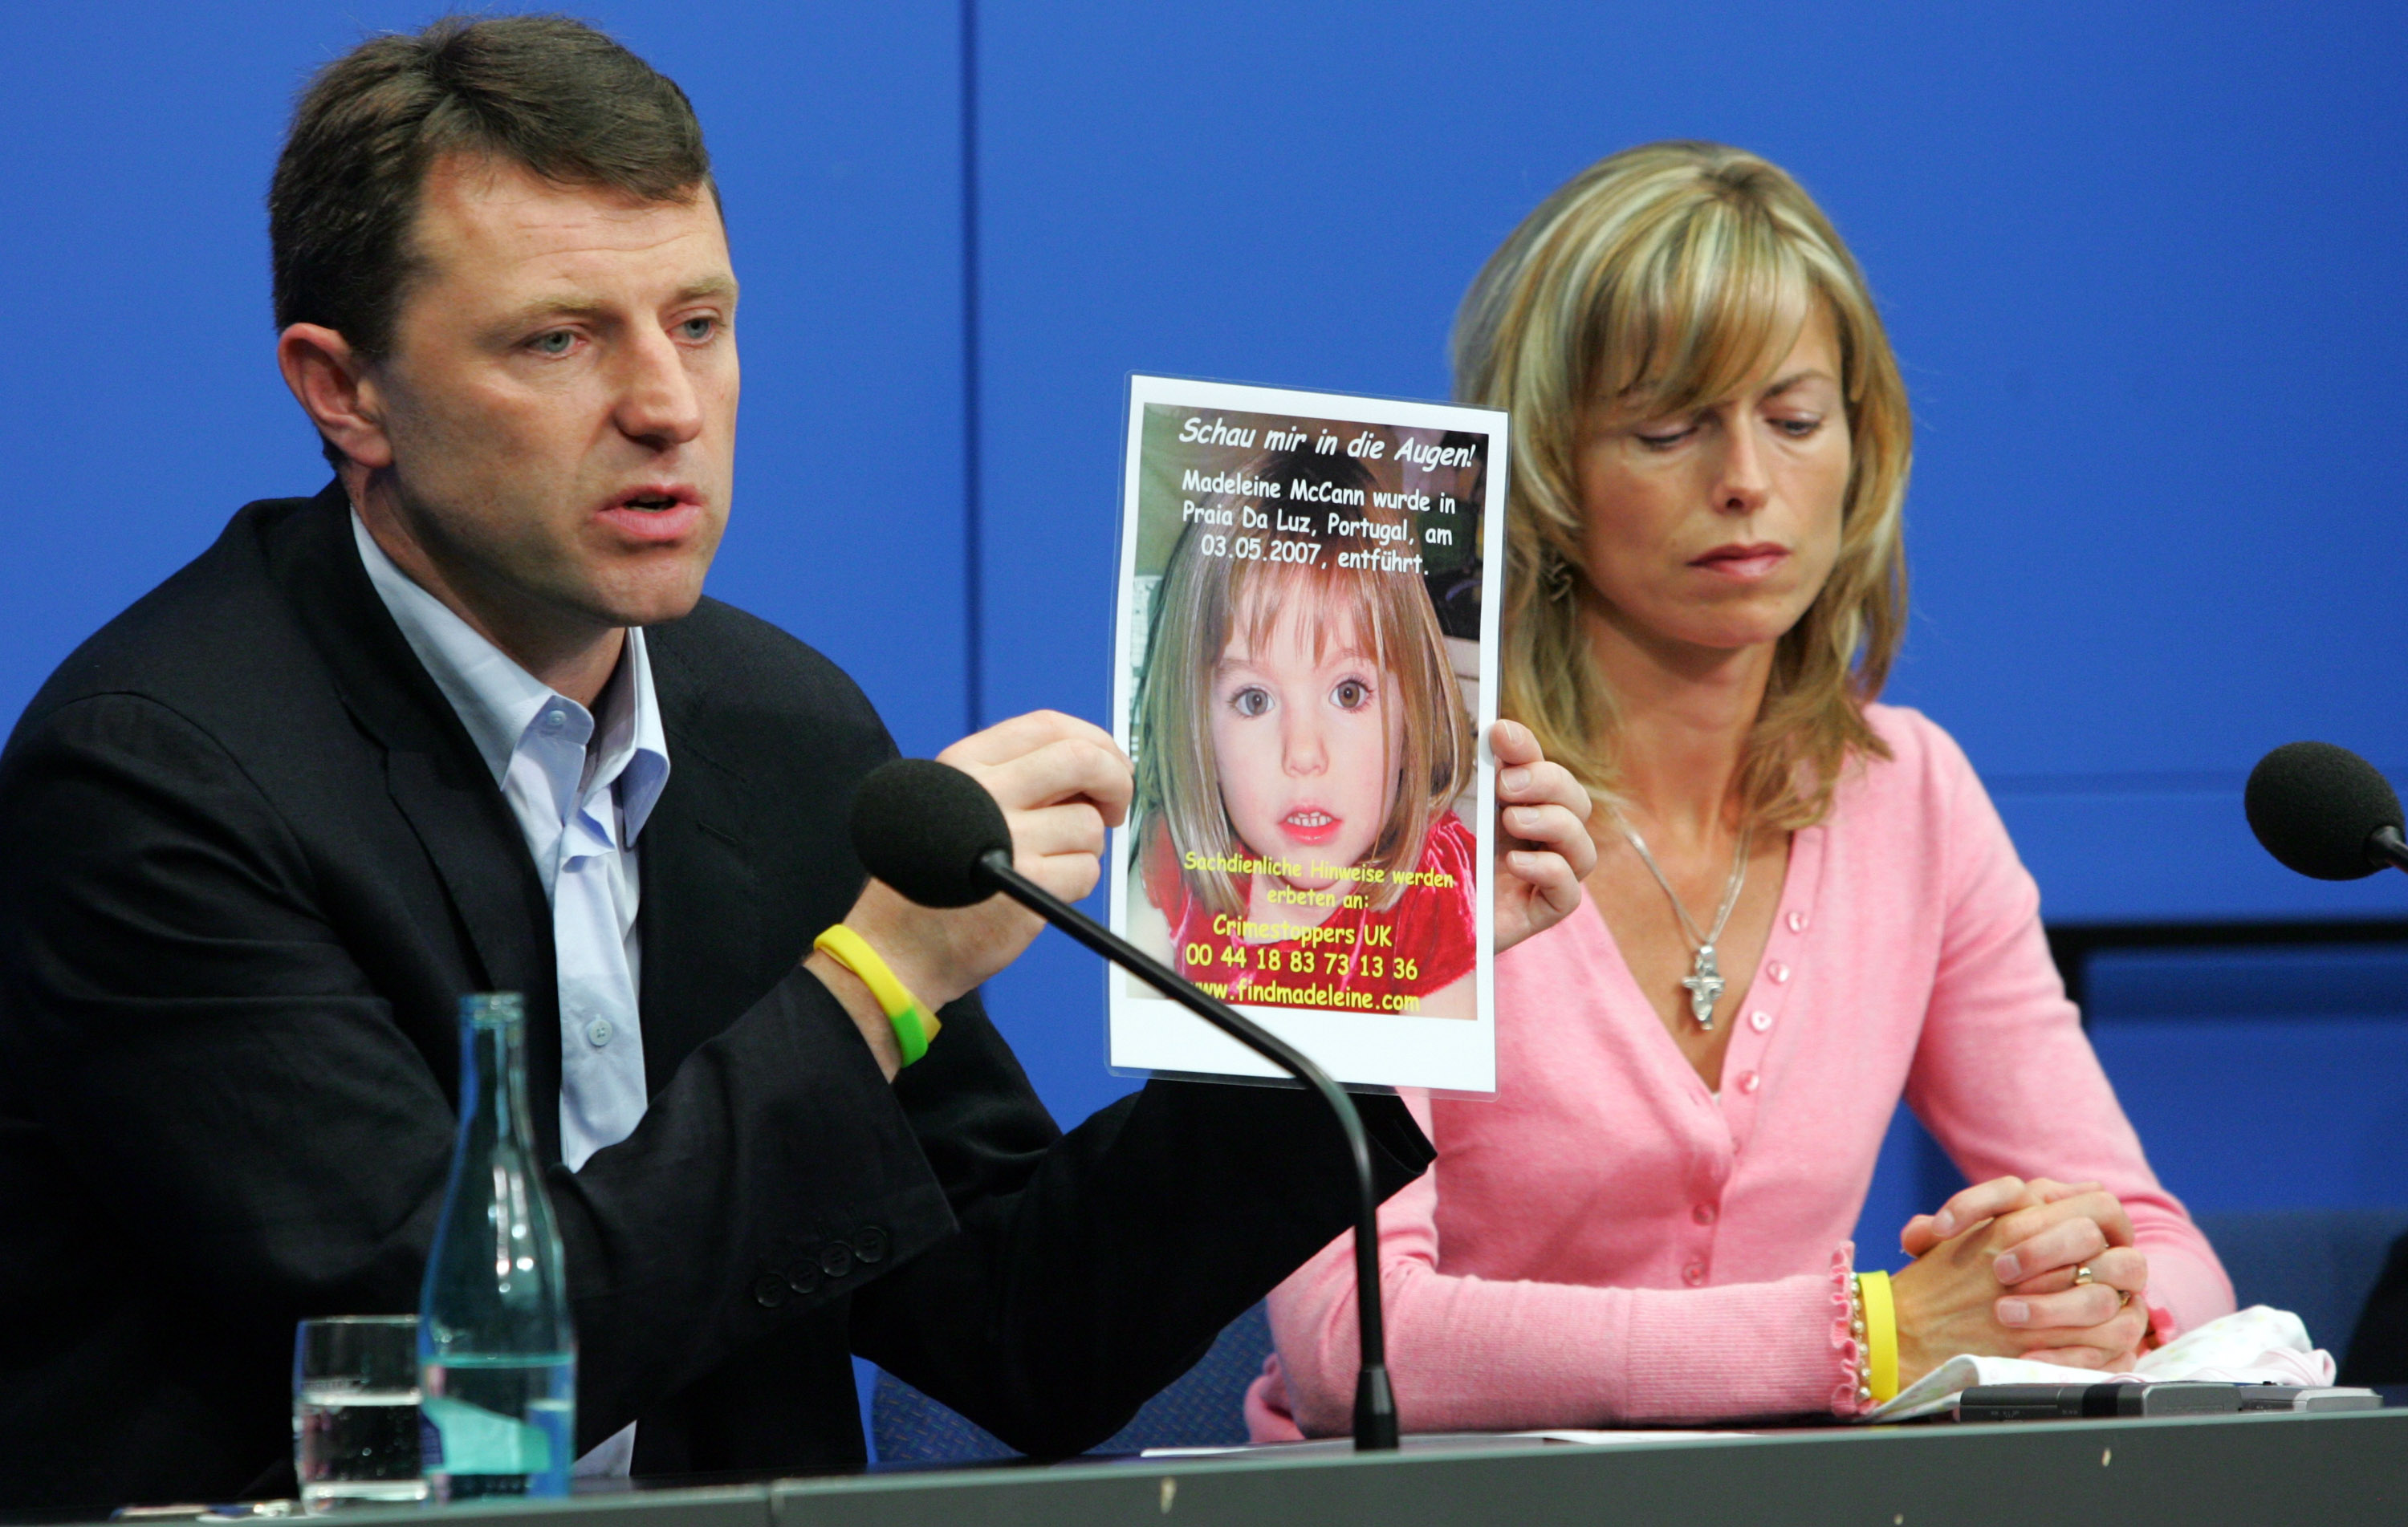 Kate and Gerry McCann, the parents of the missing four-year-old British girl Madeleine McCann, hold up a picture of Madeleine during a press conference on June 6, 2007, in Berlin, Germany. Kate and her husband Gerry are in Berlin to spread the word in the search for their missing duaghter Madeleine who disappeared from their holiday apartment in Praia da Luz, Portugal on May 3, 2007. (Getty Images)